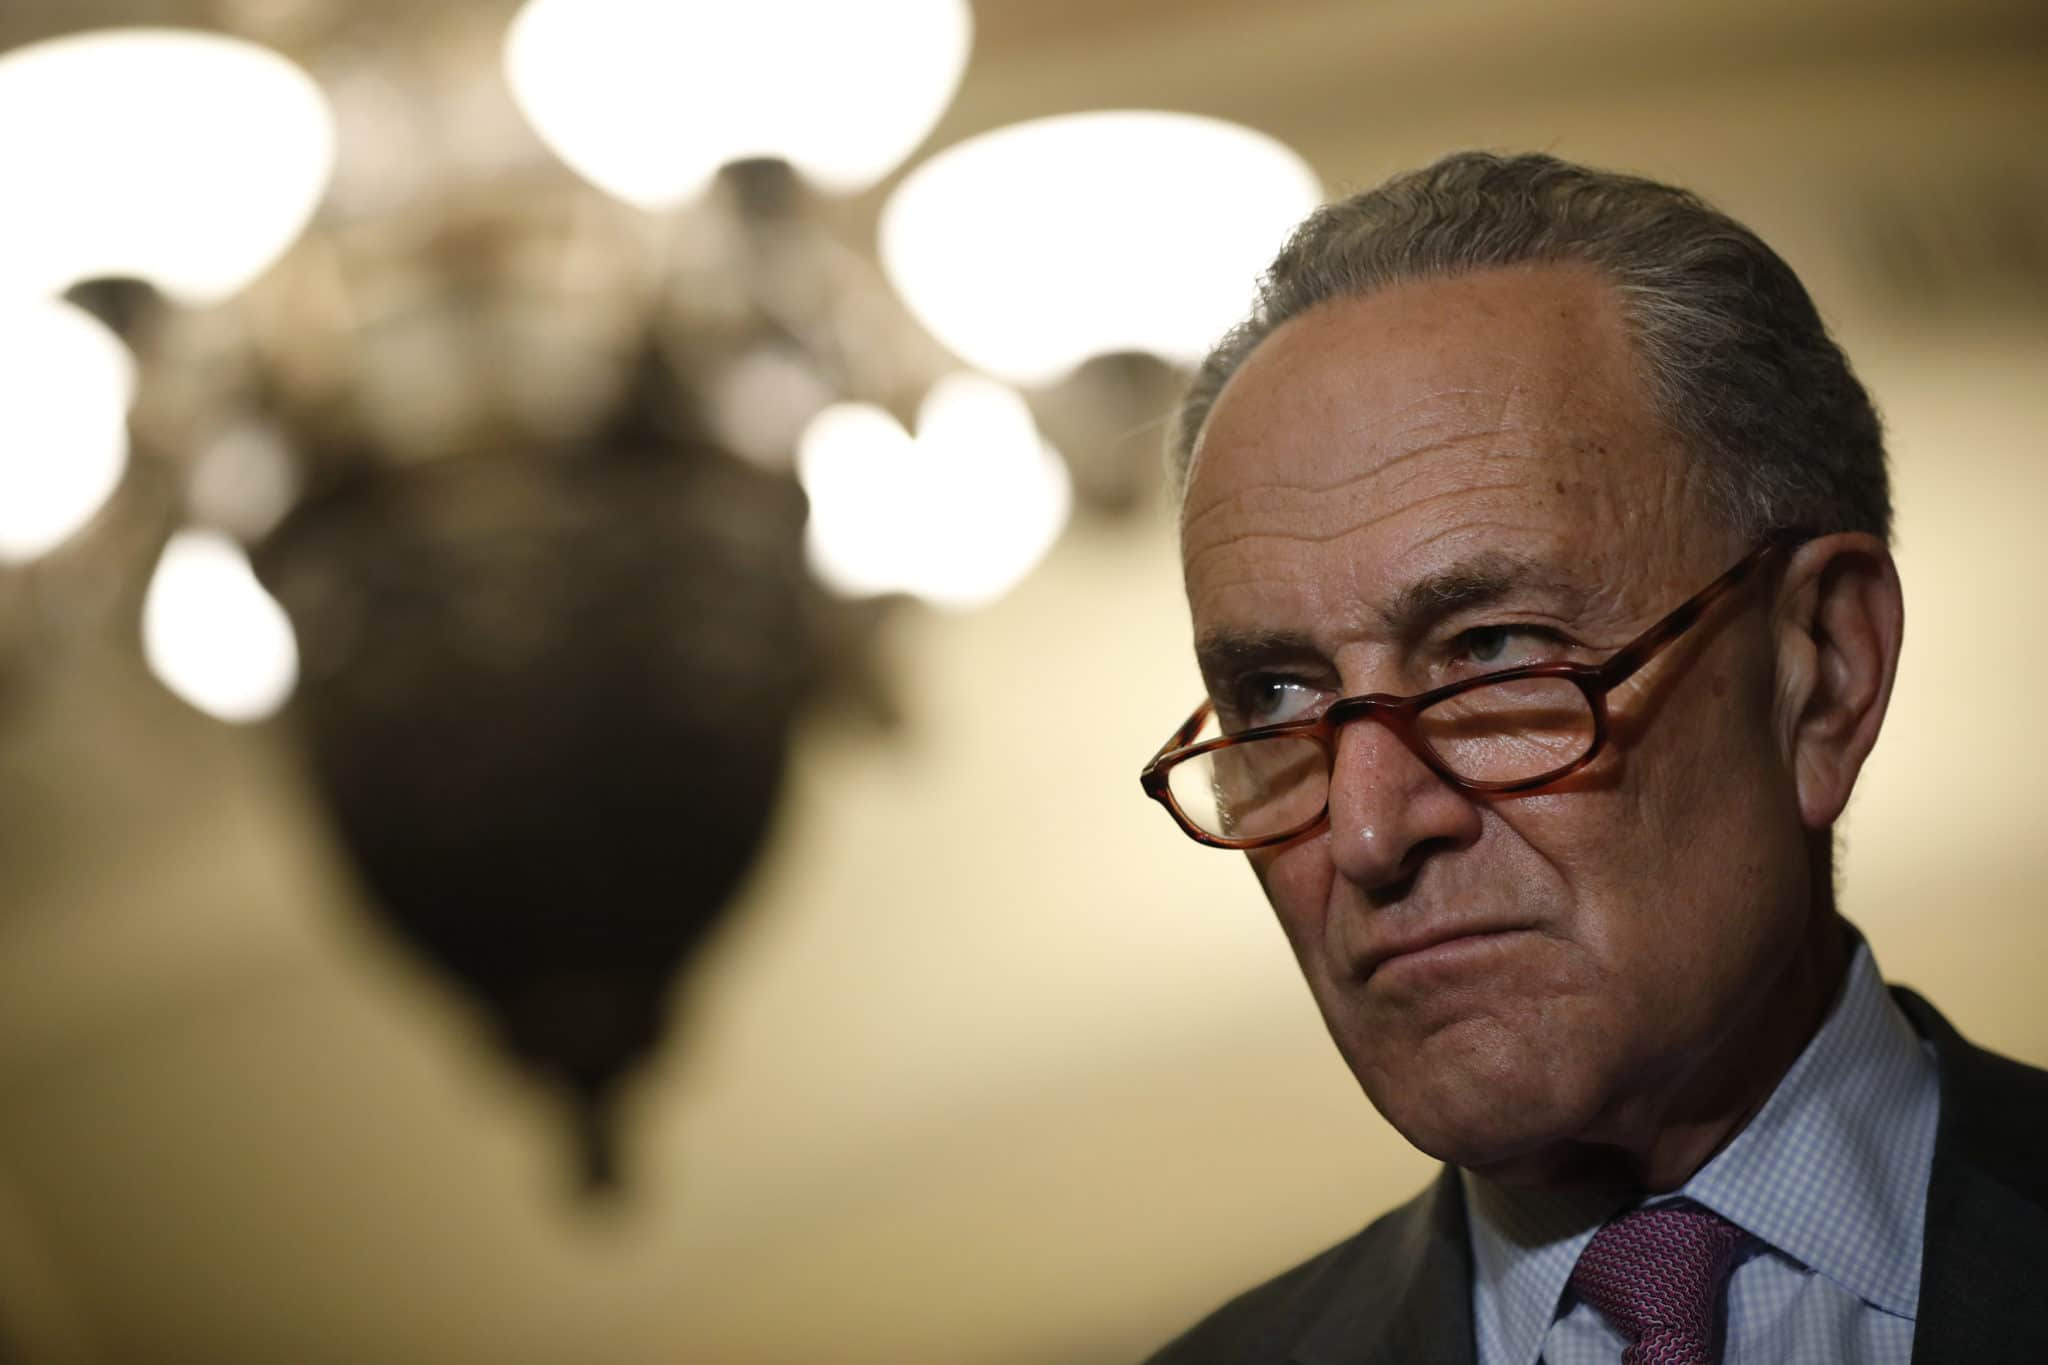 GOP Sen. Moves to Censure Schumer for his Threatening Remarks against Kavanaugh, Gorsuch